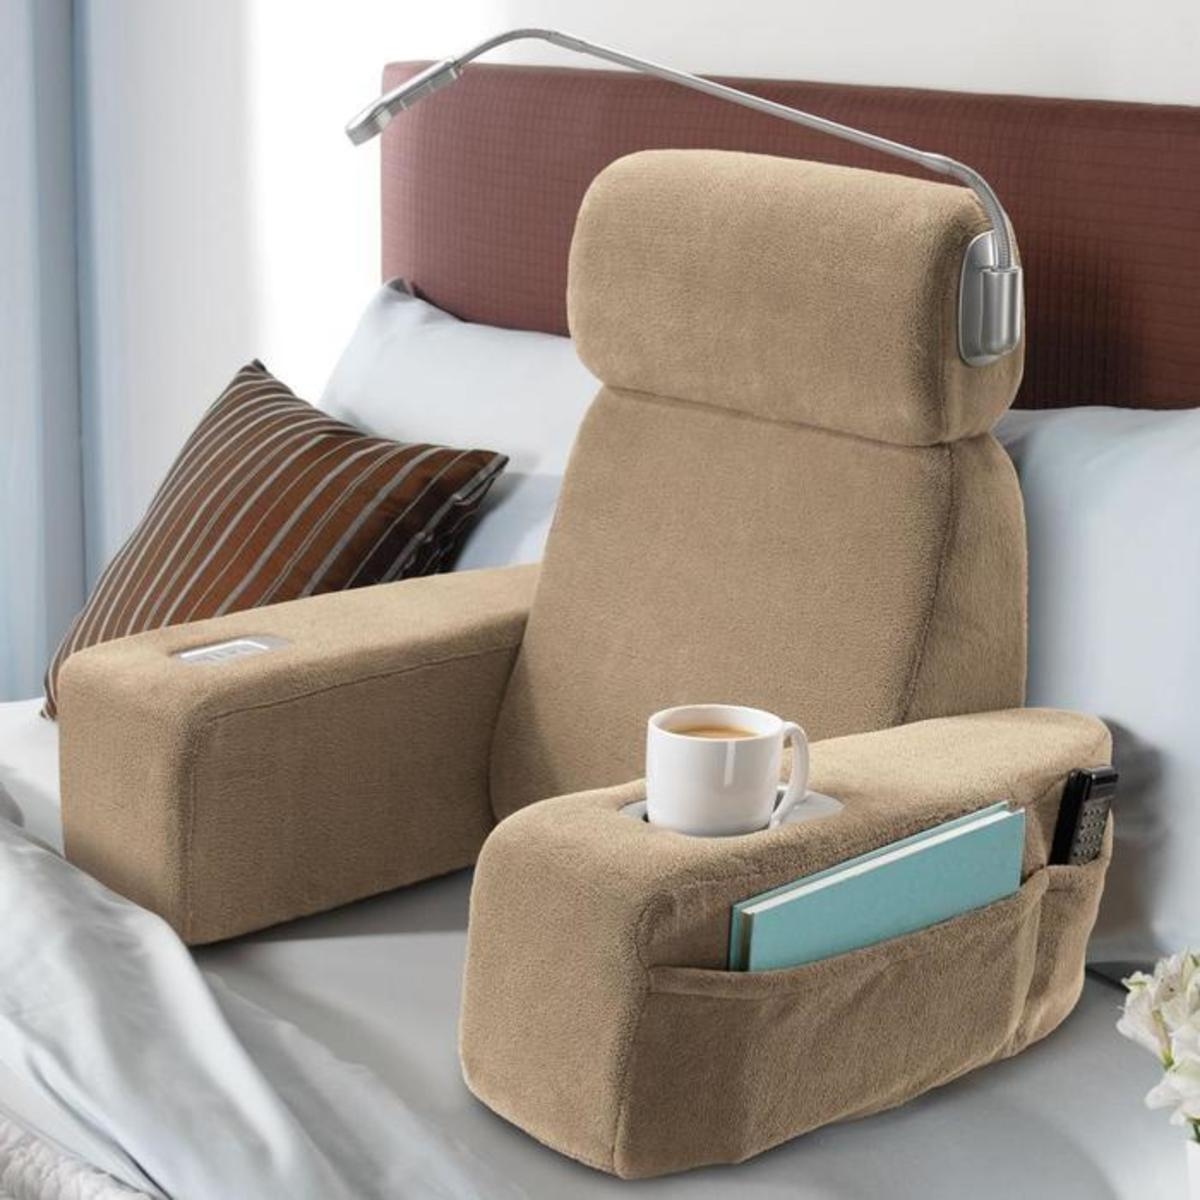 The Nap pillow includes a built-in massager, cup holders, and an LED reading light.